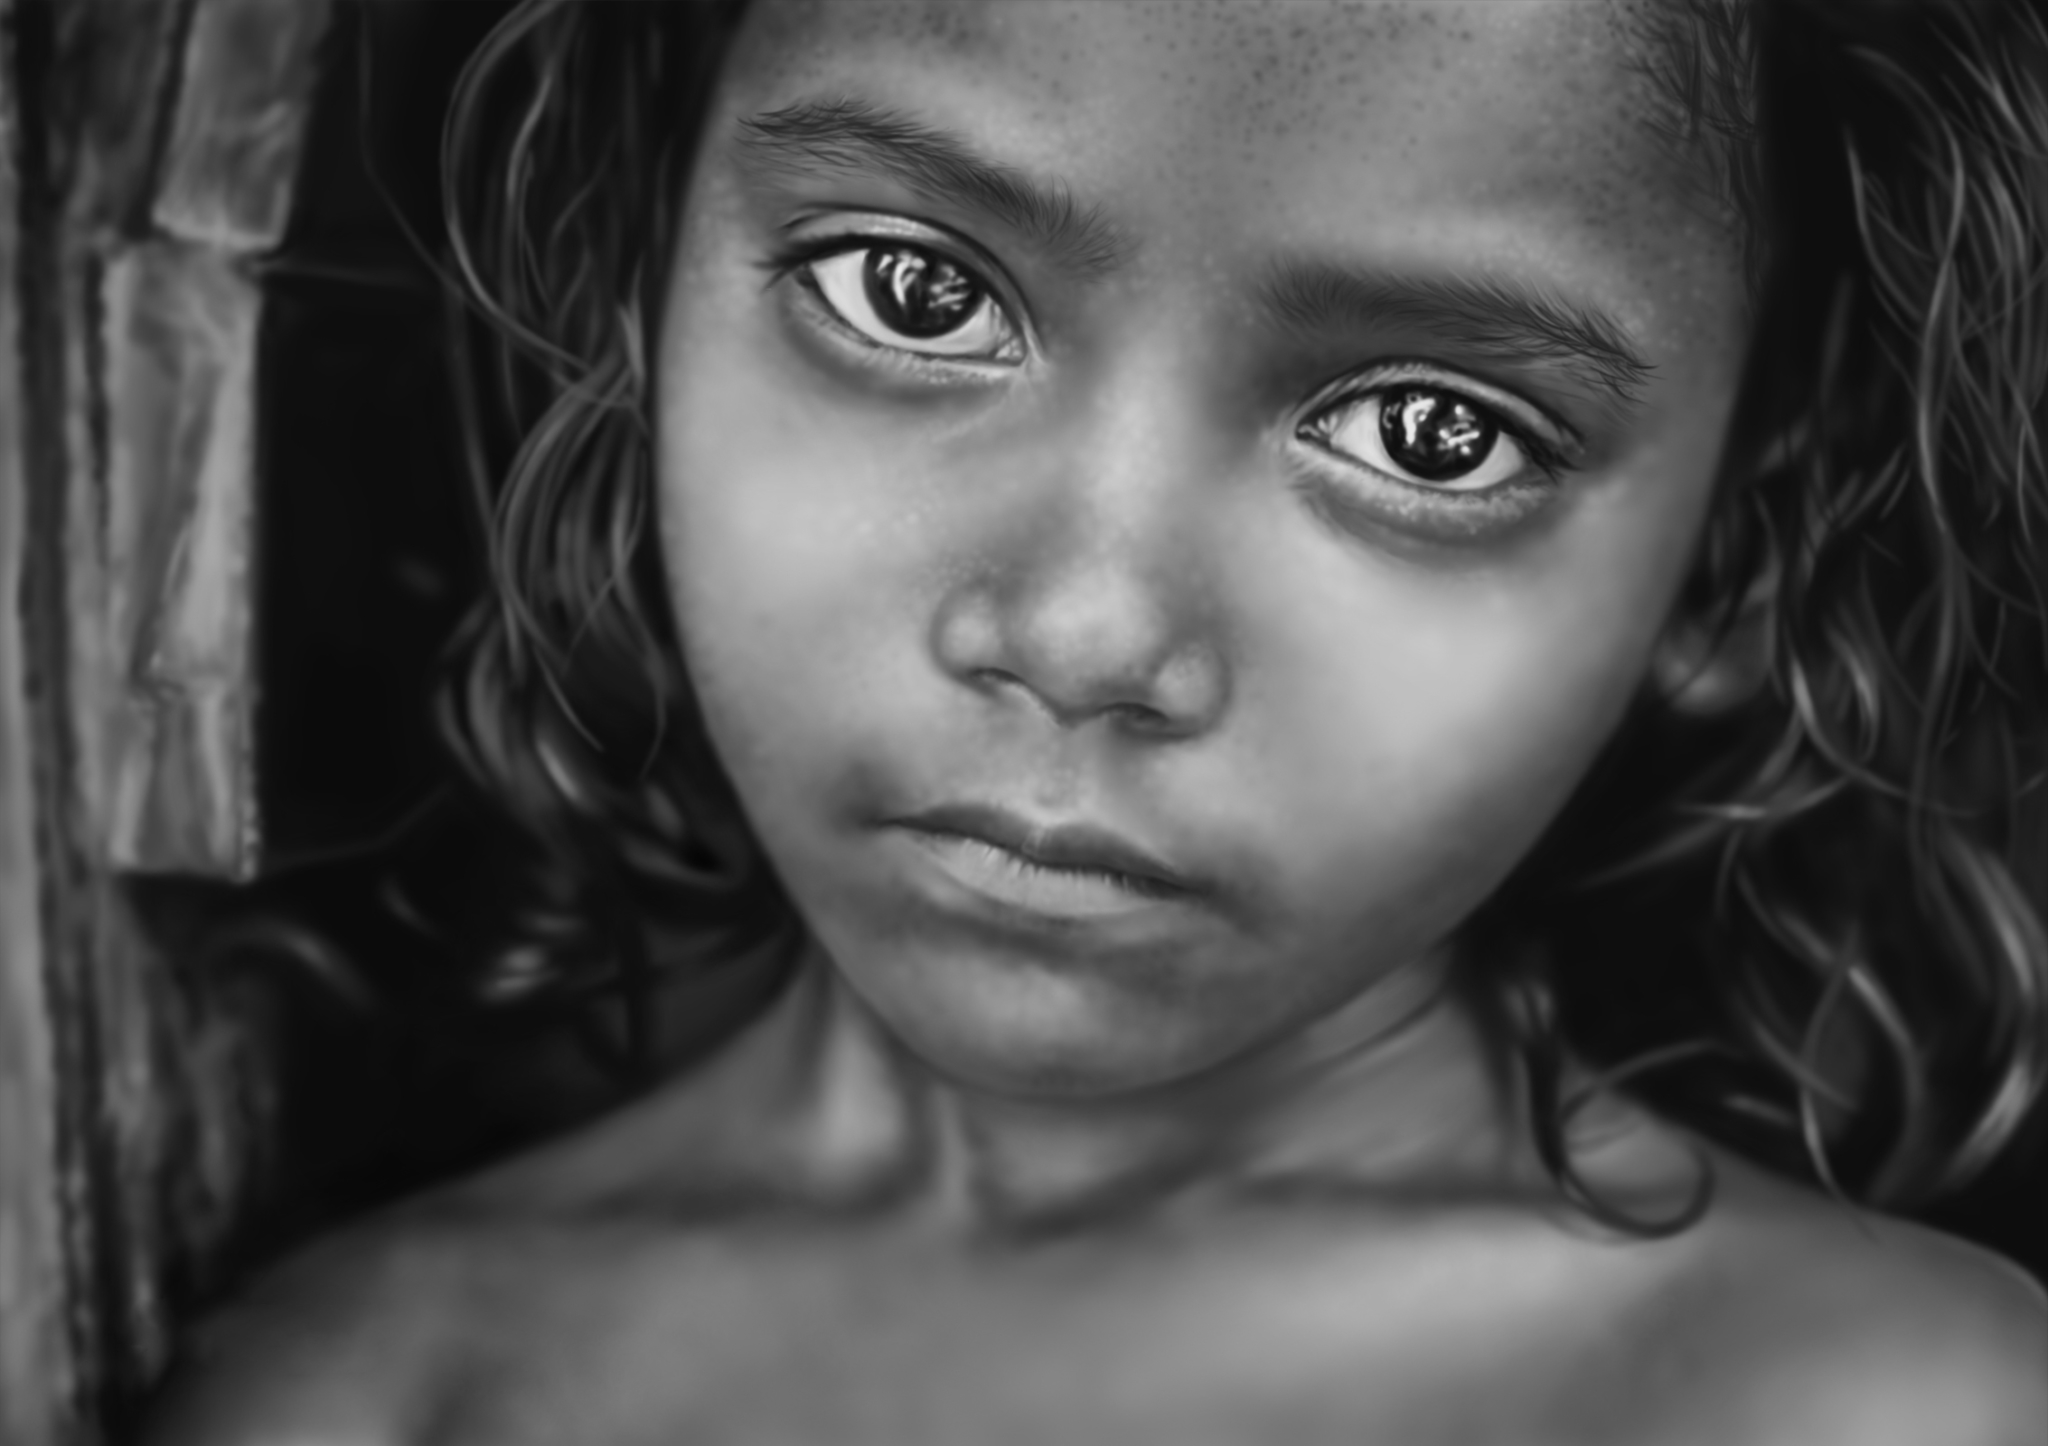 2D Young Girl Black and White Pencil Illustration